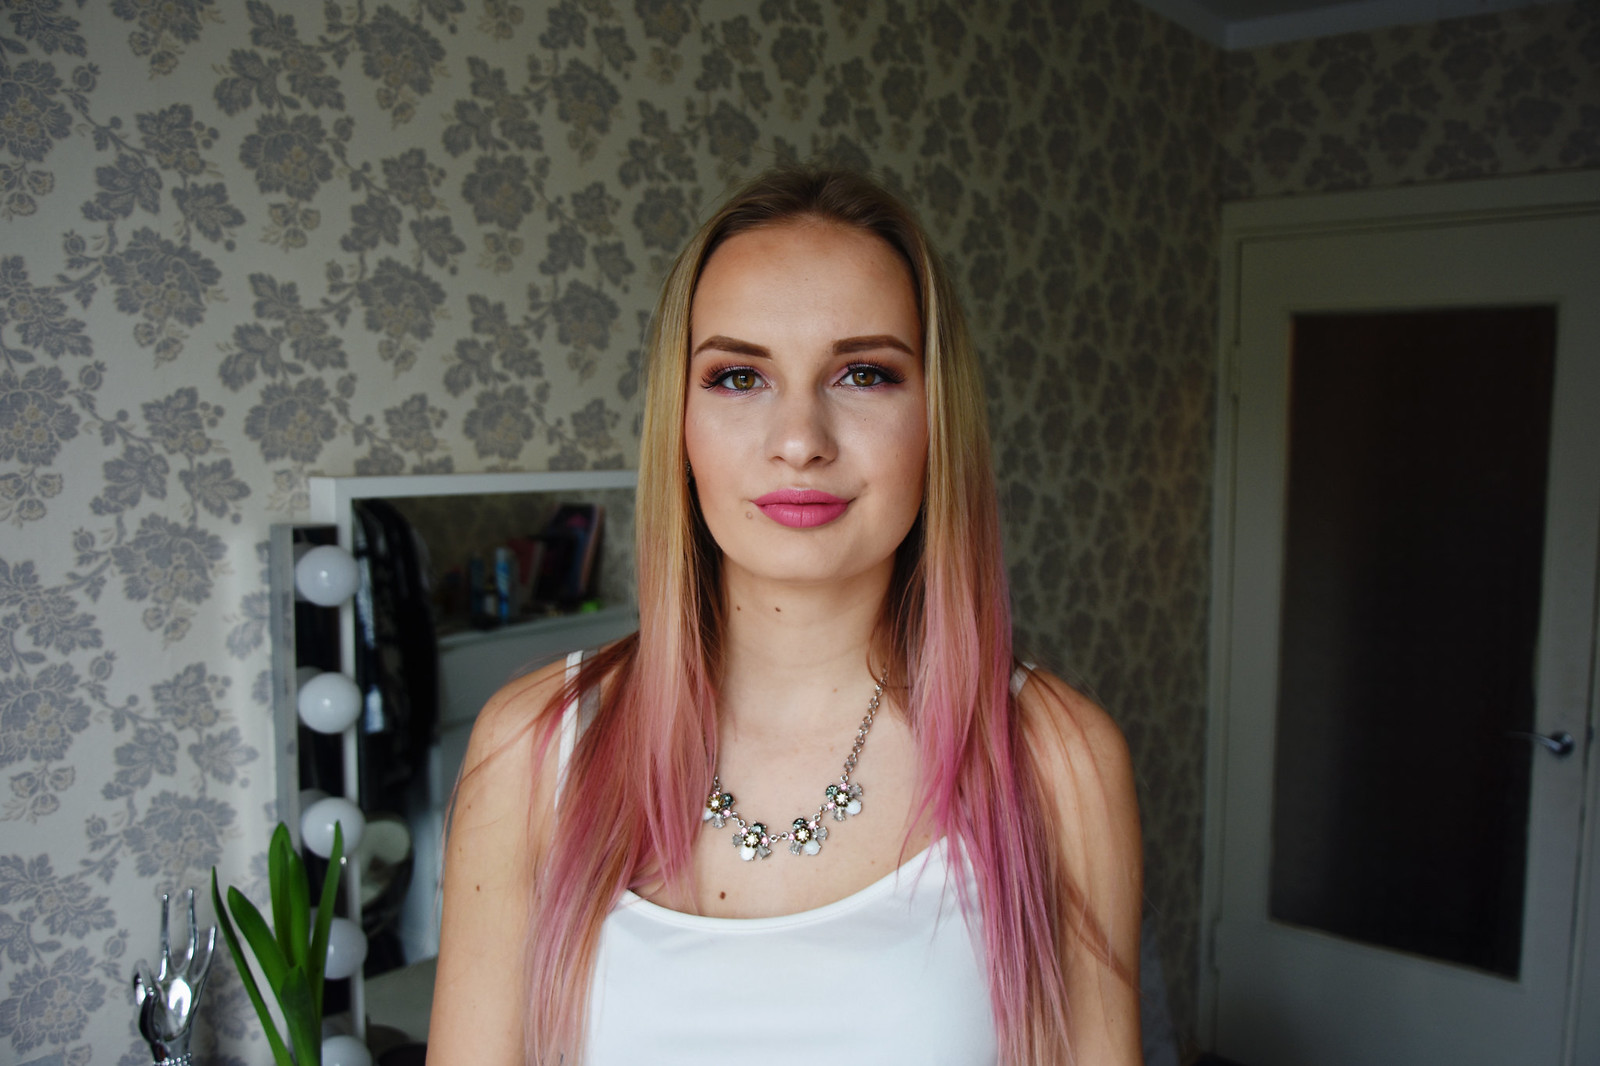 L'Oreal Colorista Washout Dirty Pink in blonde hair